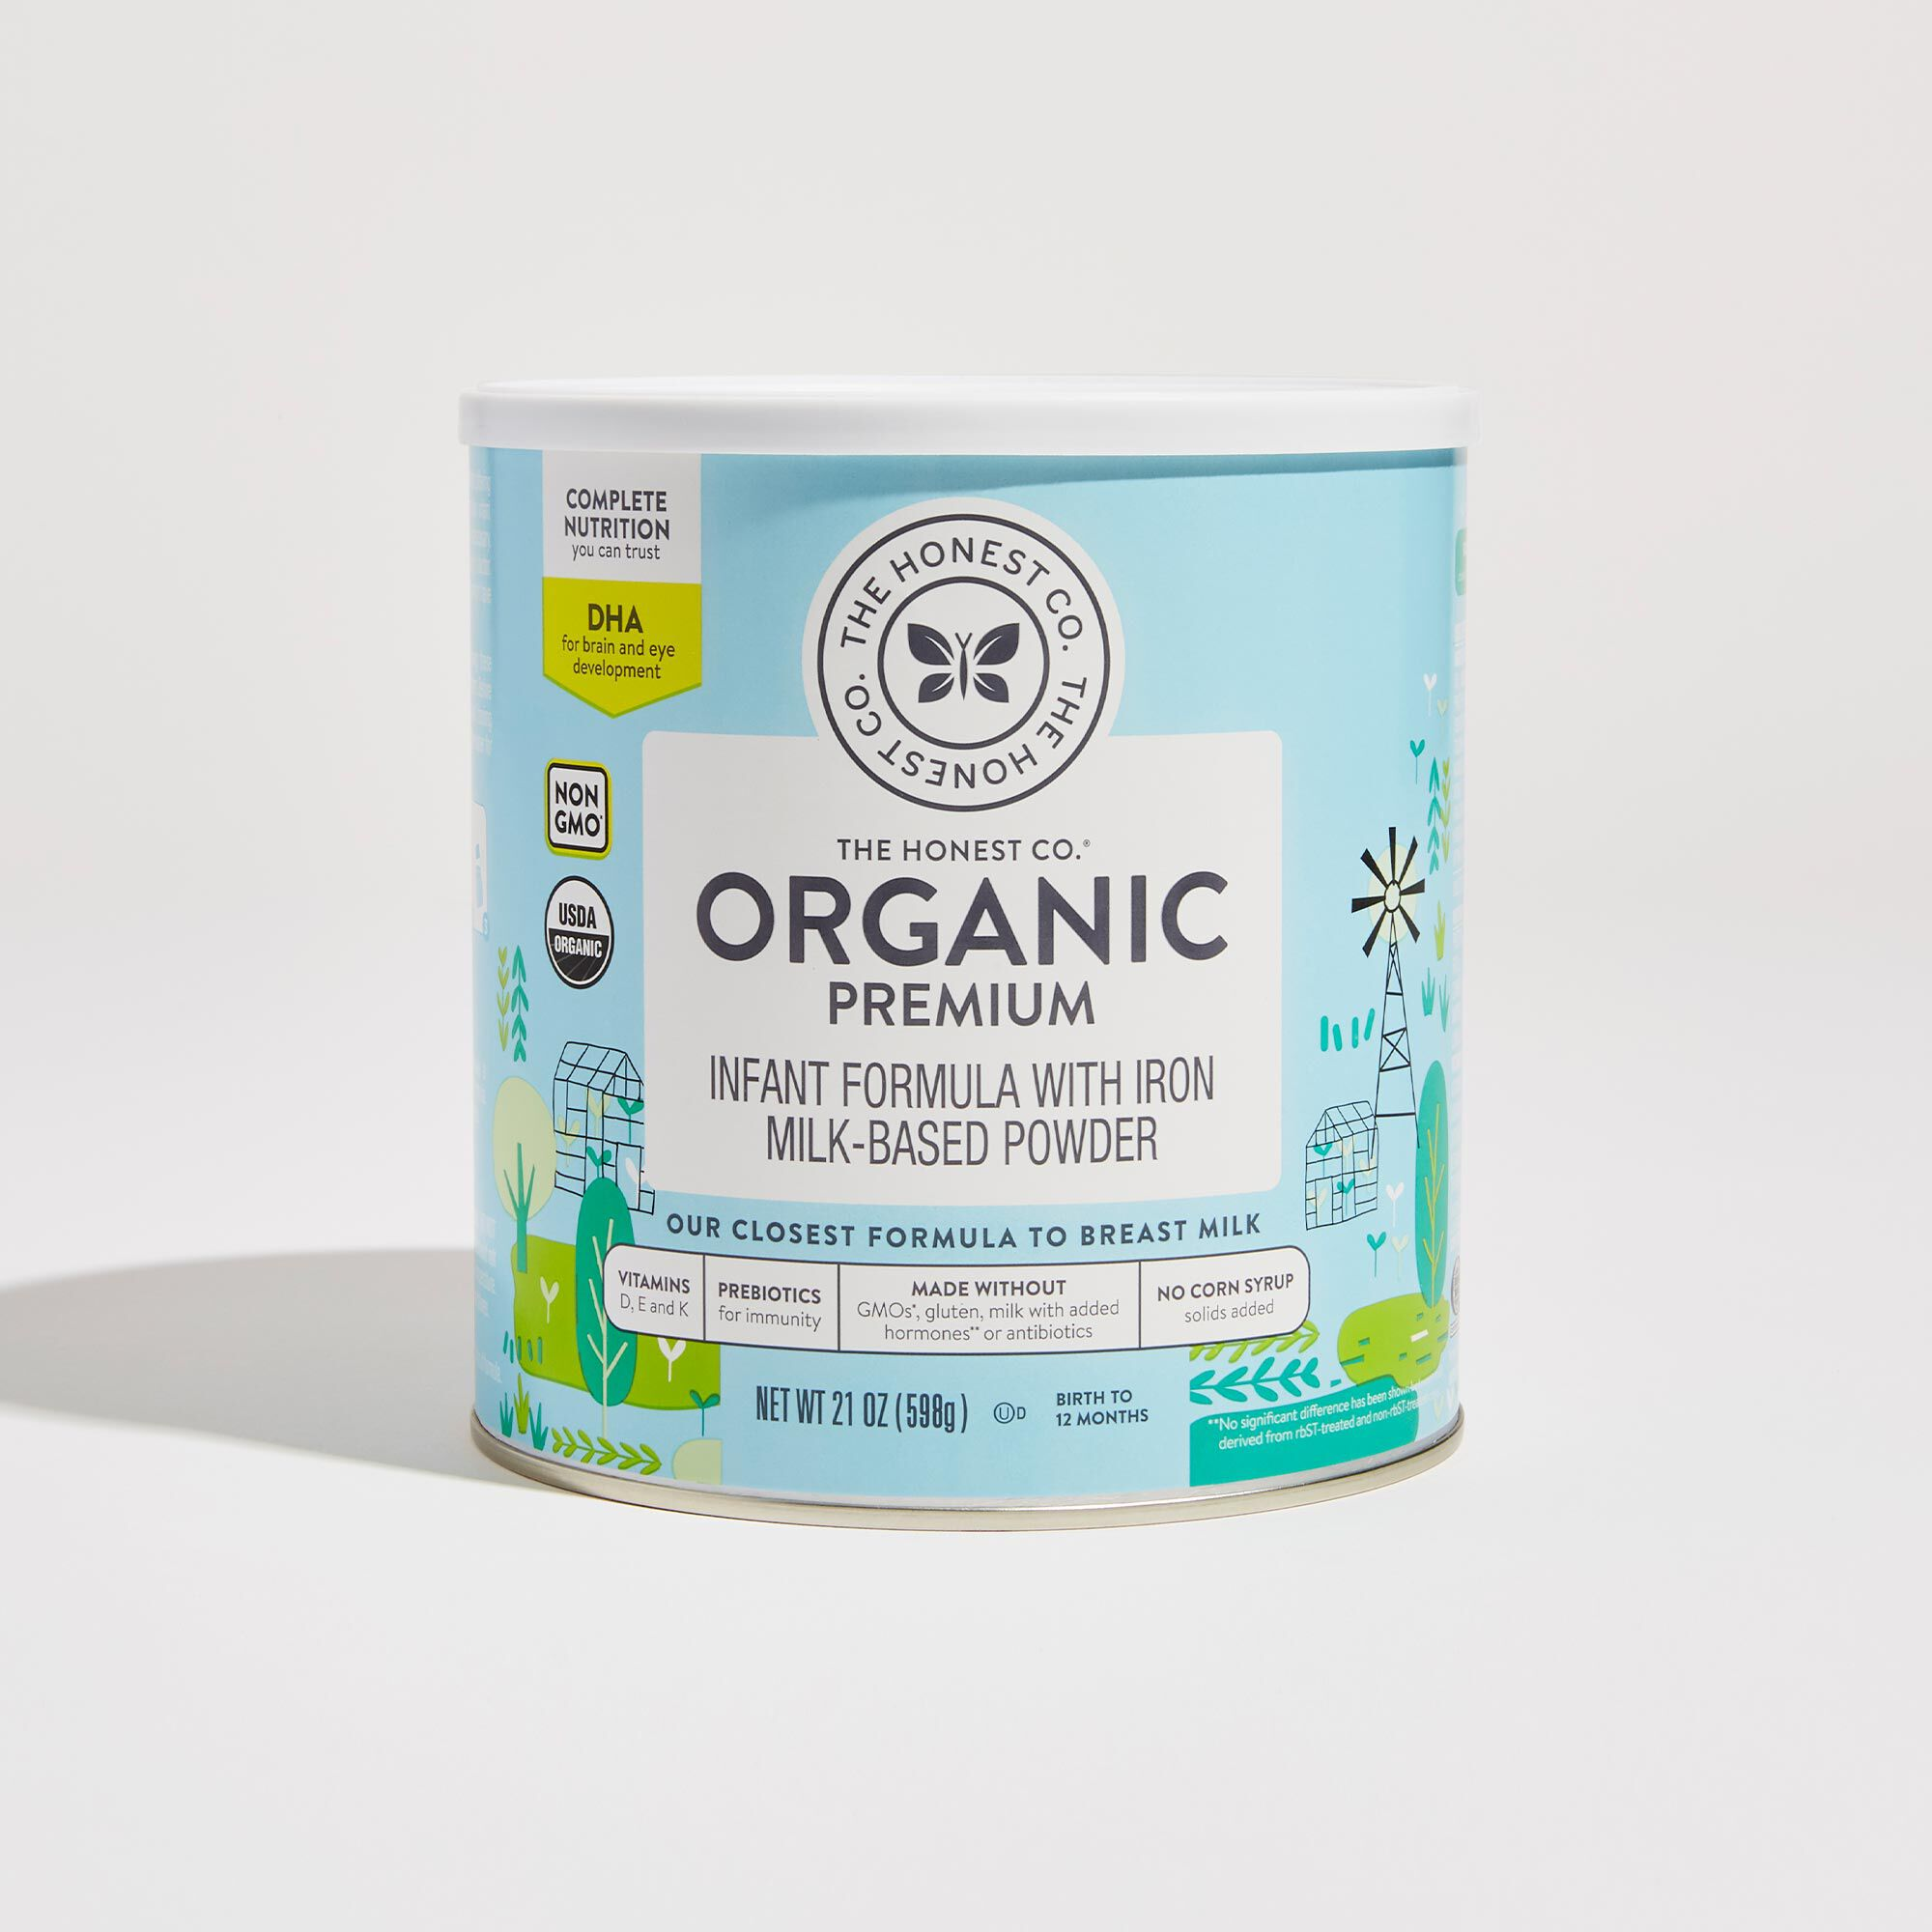 21 ounce of Organic Premium Infant Formula in Container